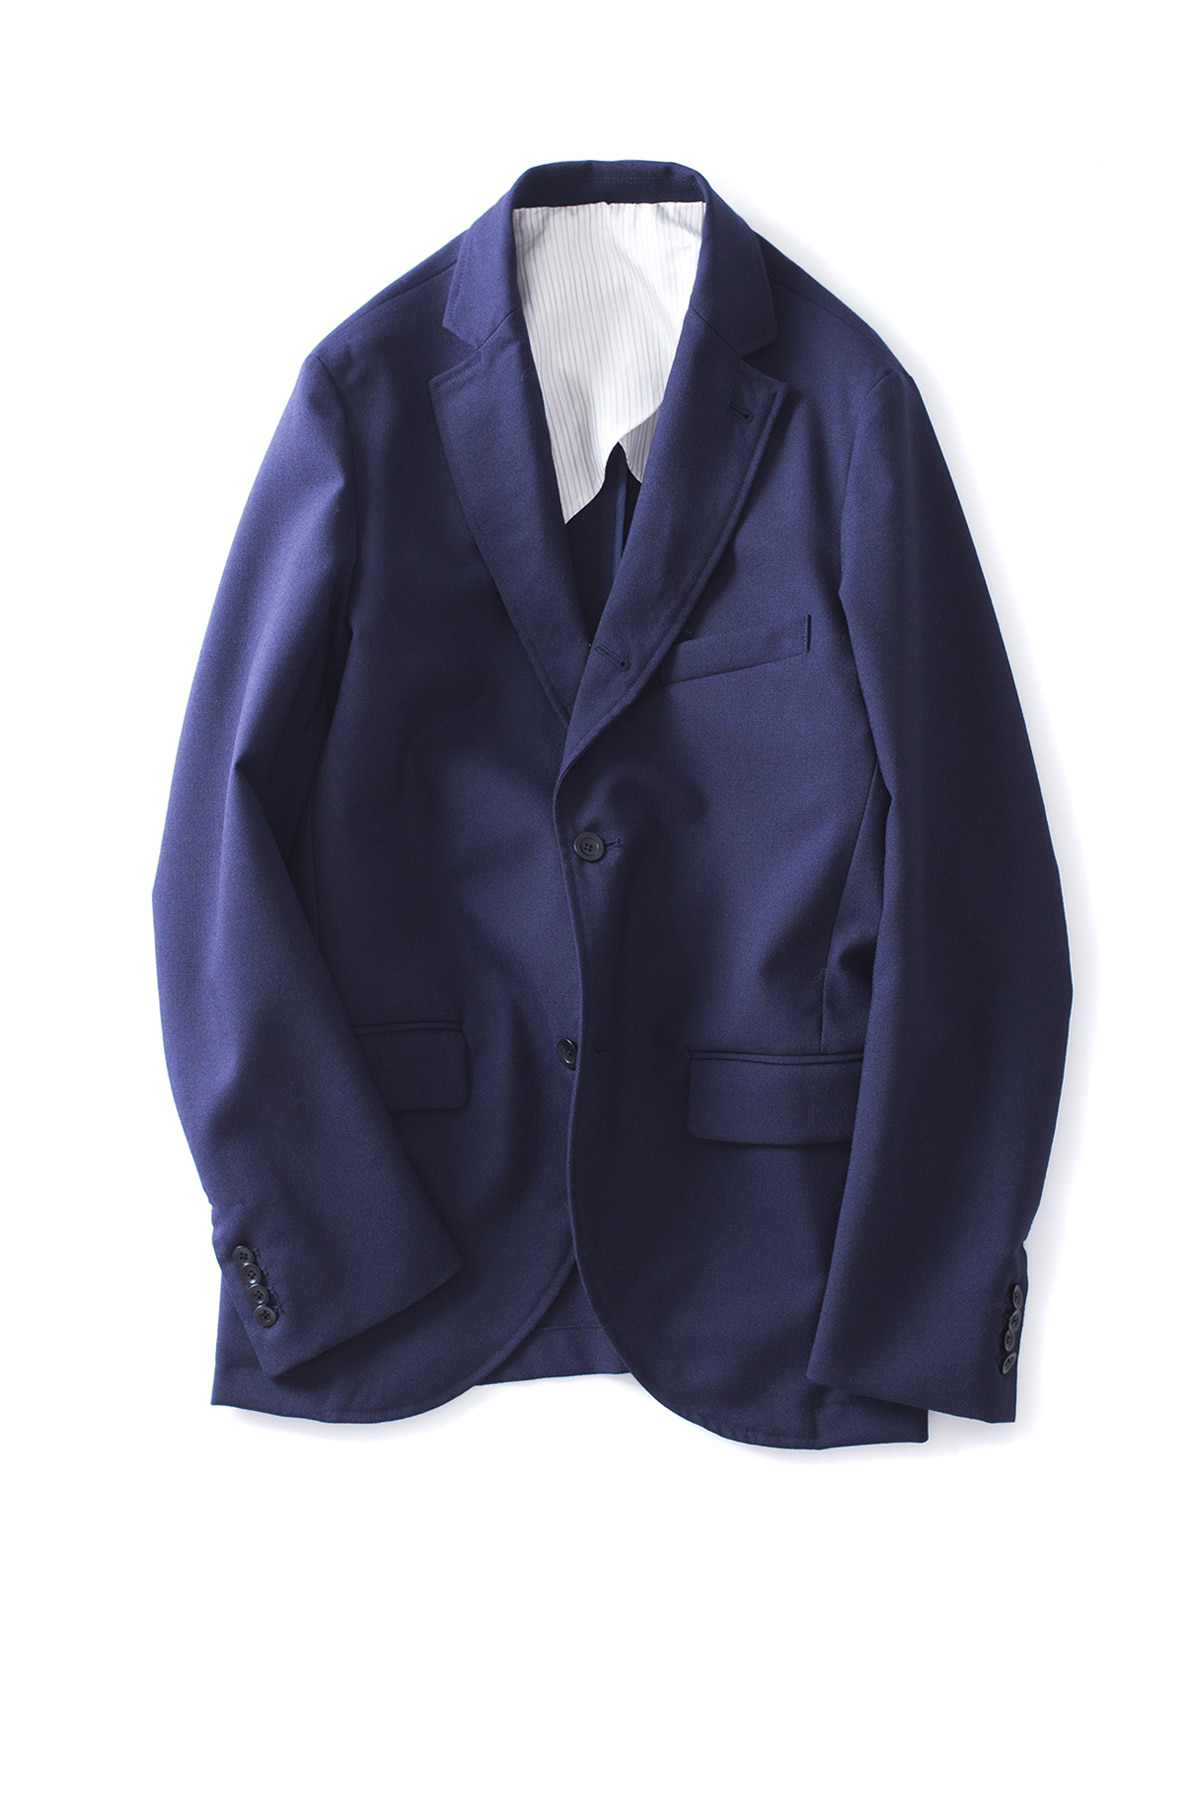 EHS : Tailored Jacket (Navy)